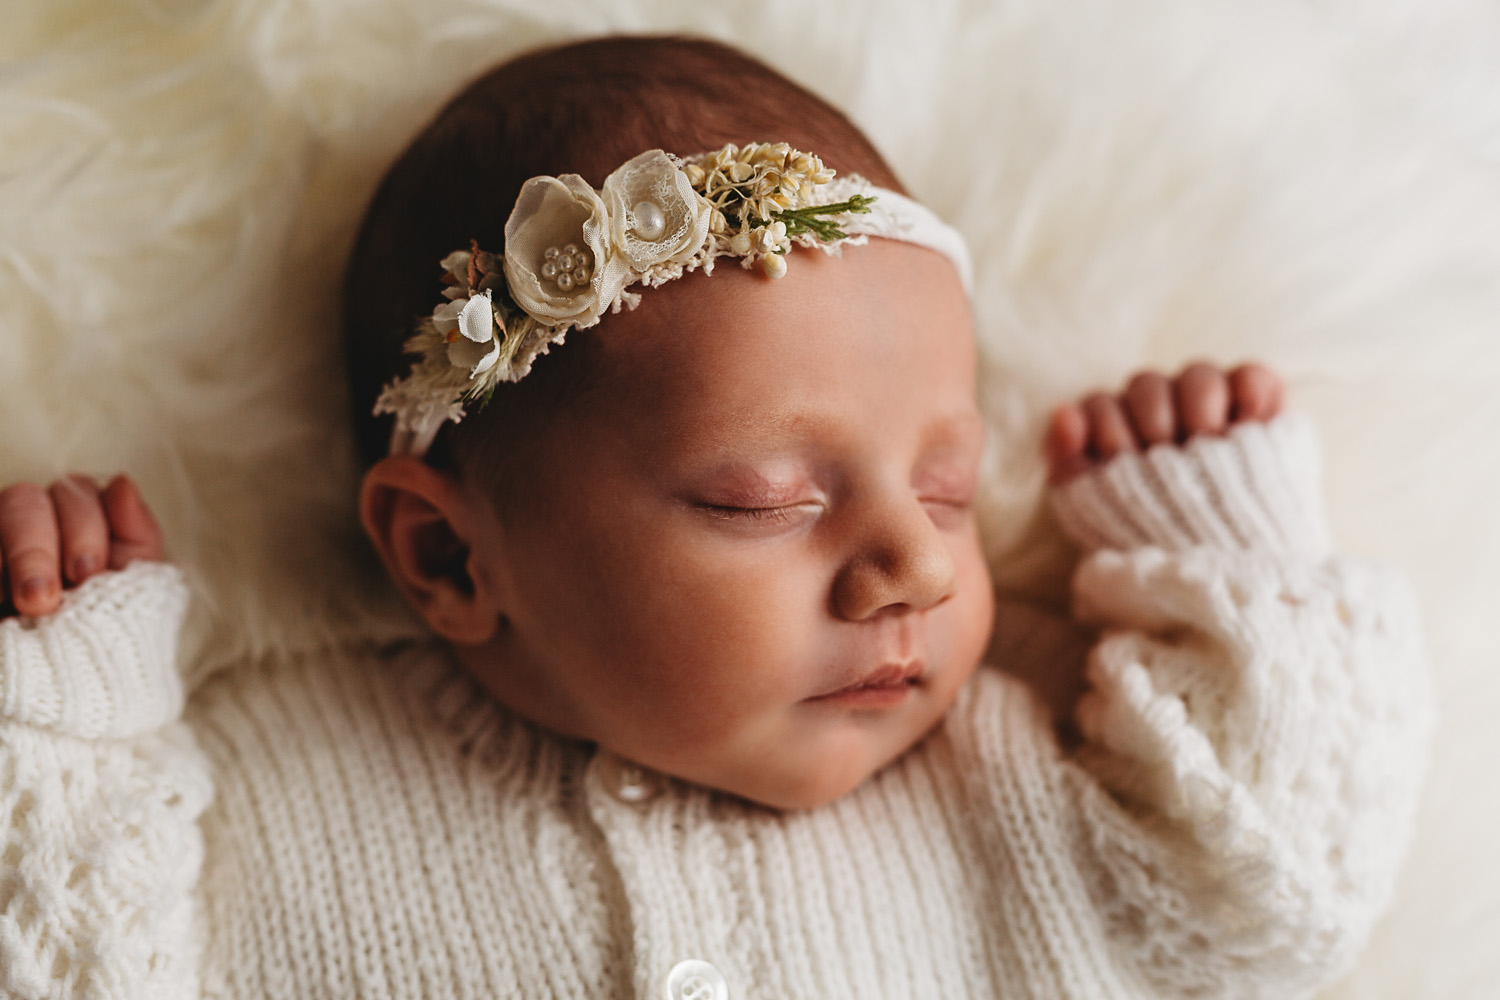 Lifestyle newborn photography in bergen county new jersey